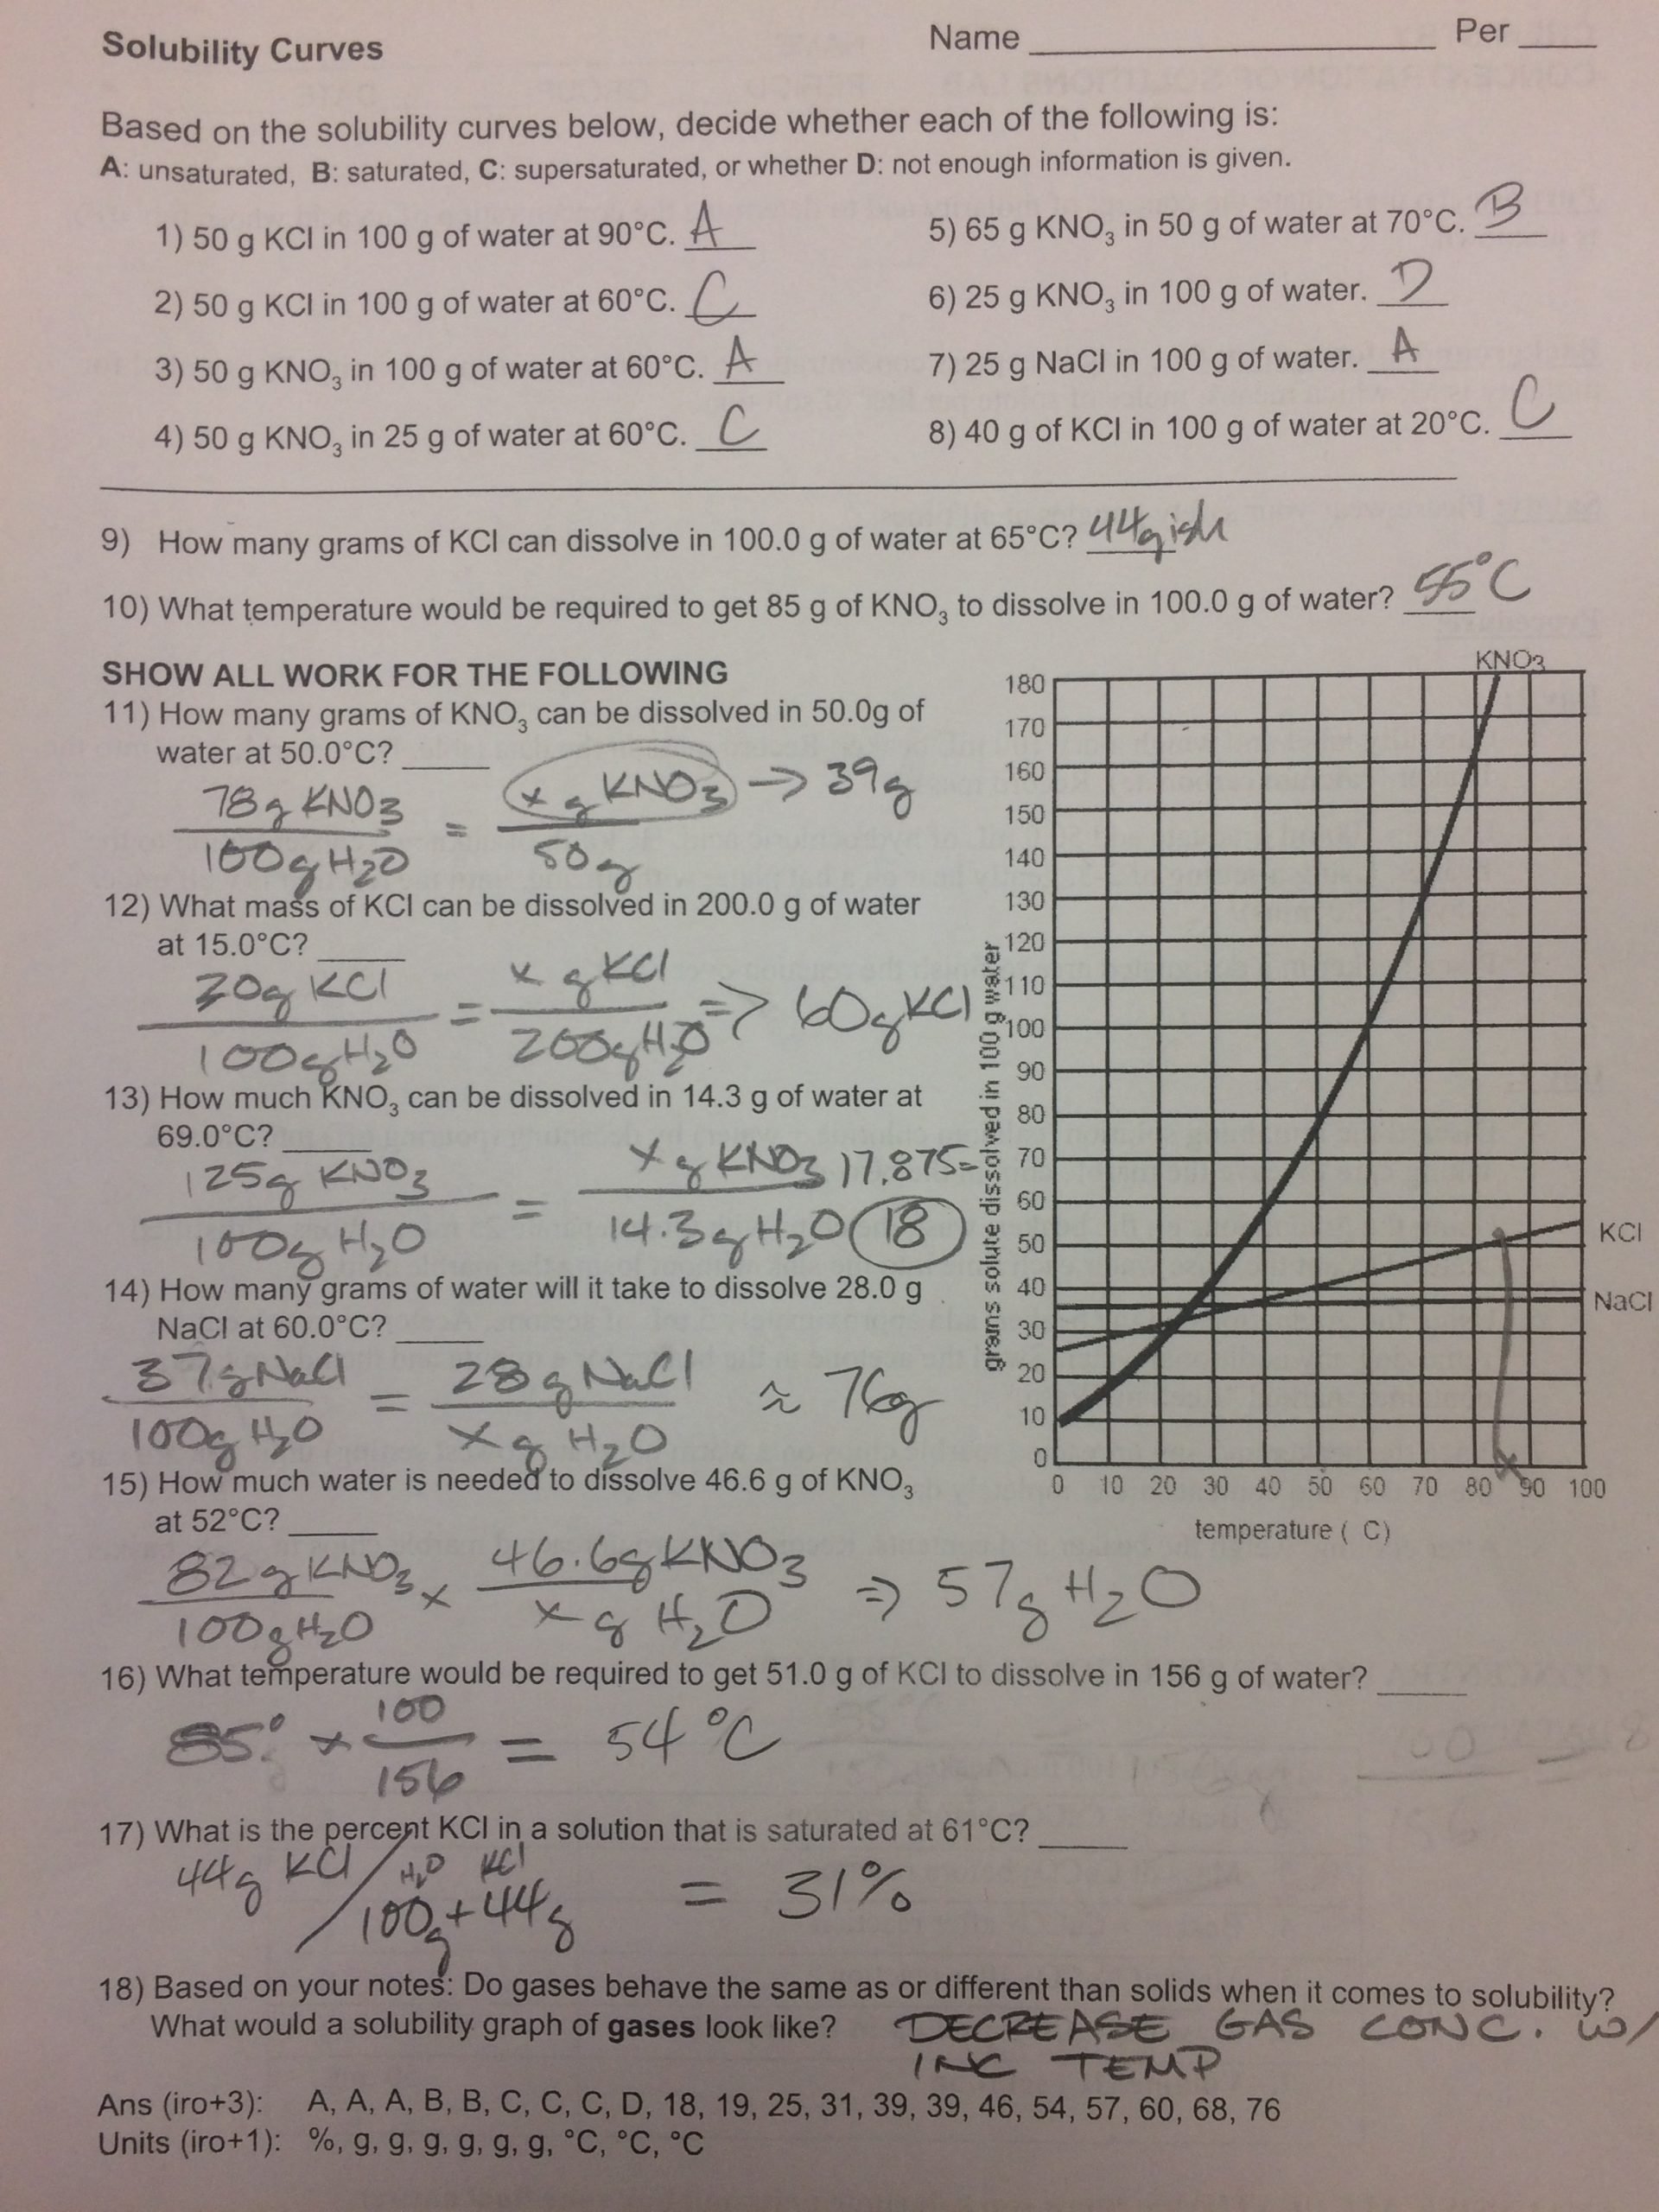 Solubility Graph Worksheet Answers solubility Curves Worksheet Answers